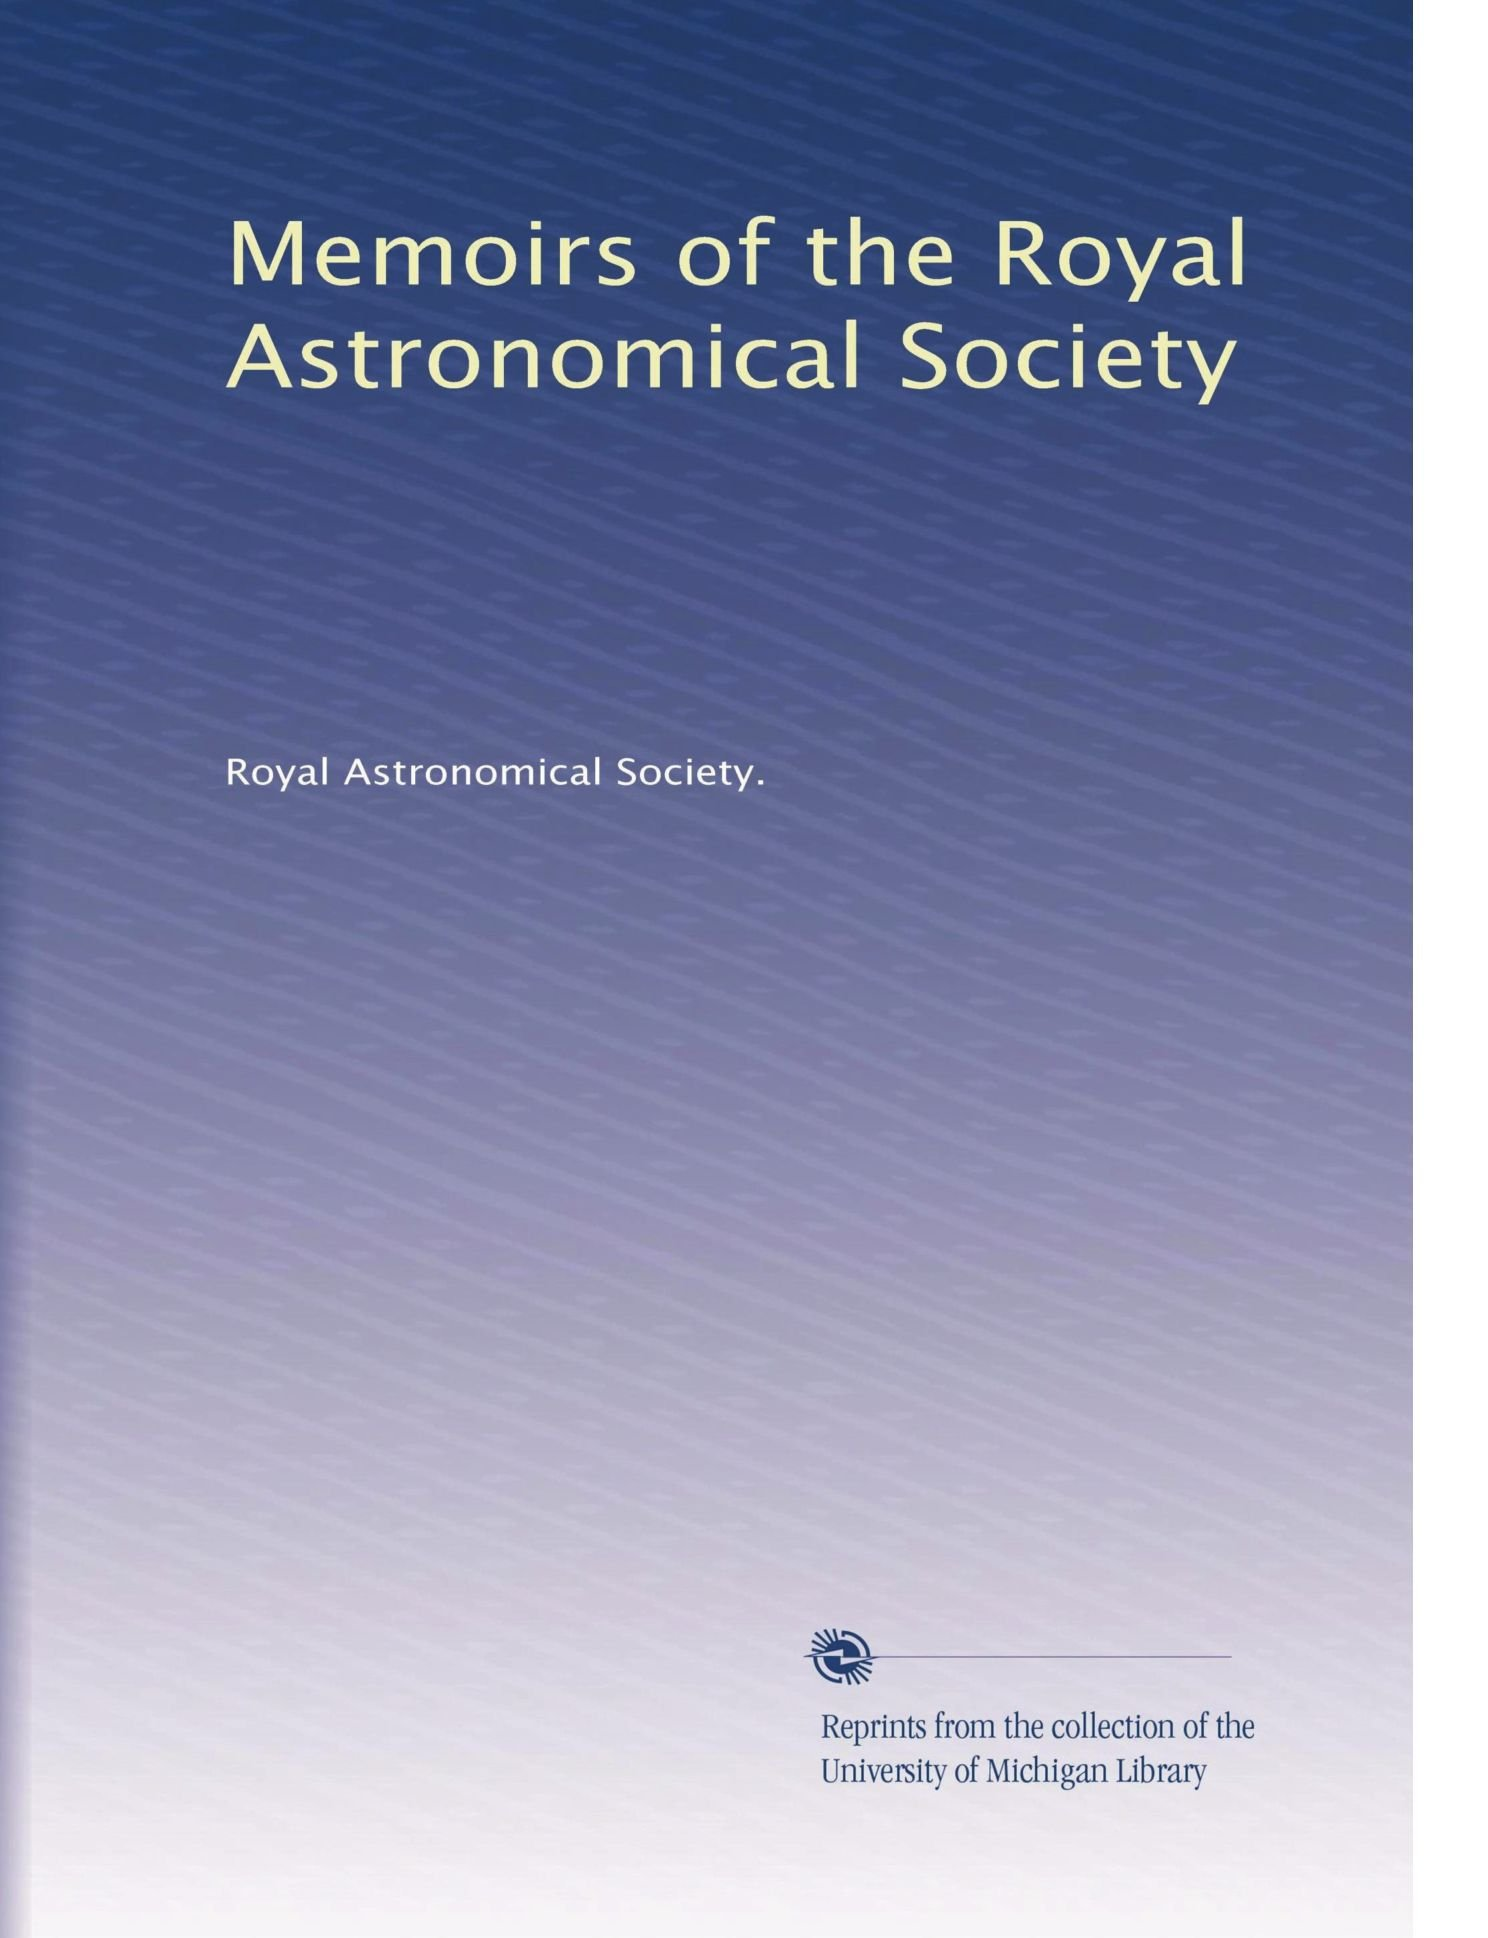 Memoirs of the Royal Astronomical Society (Volume 22) ebook